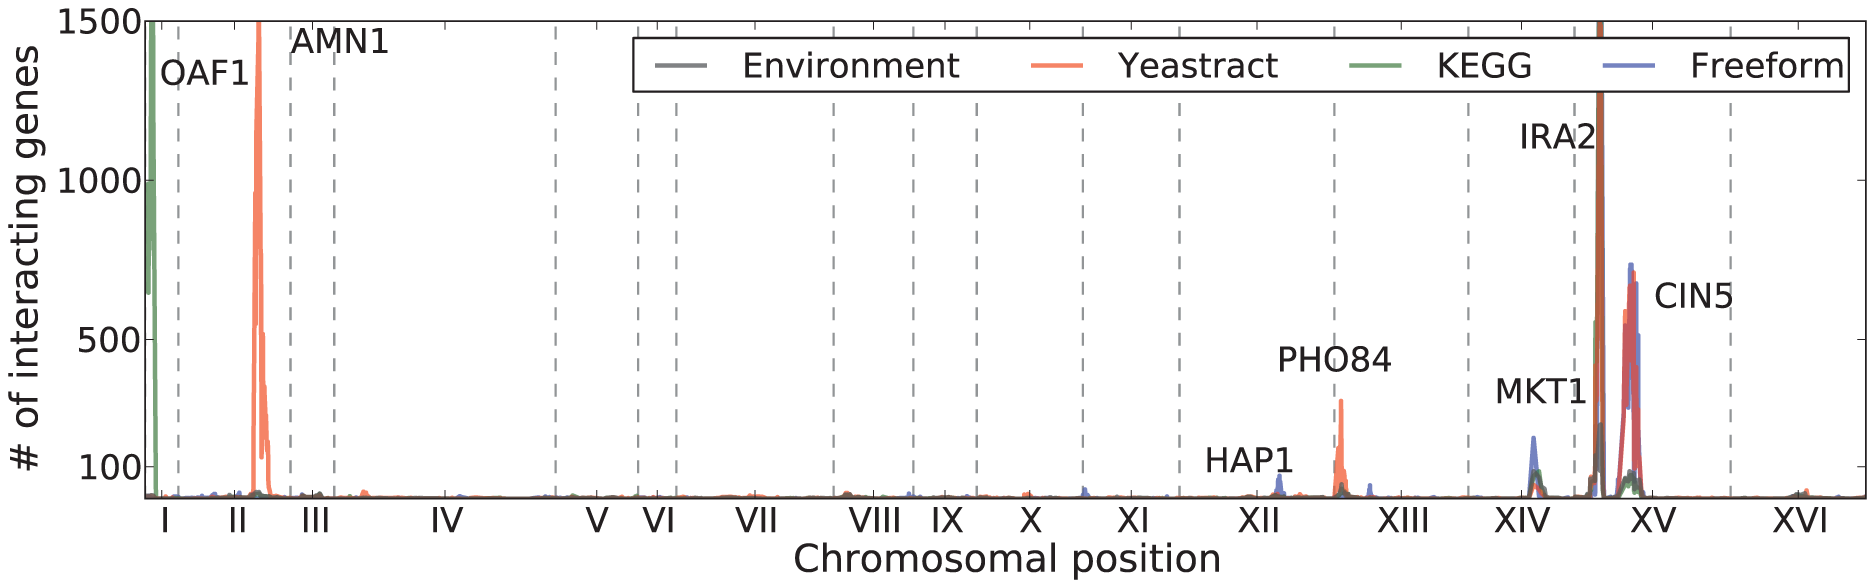 Number of genes affected by a genotype-factor interaction for each locus for Yeastract factors (blue), KEGG factors (red), freeform factors (green), and environment (gray).